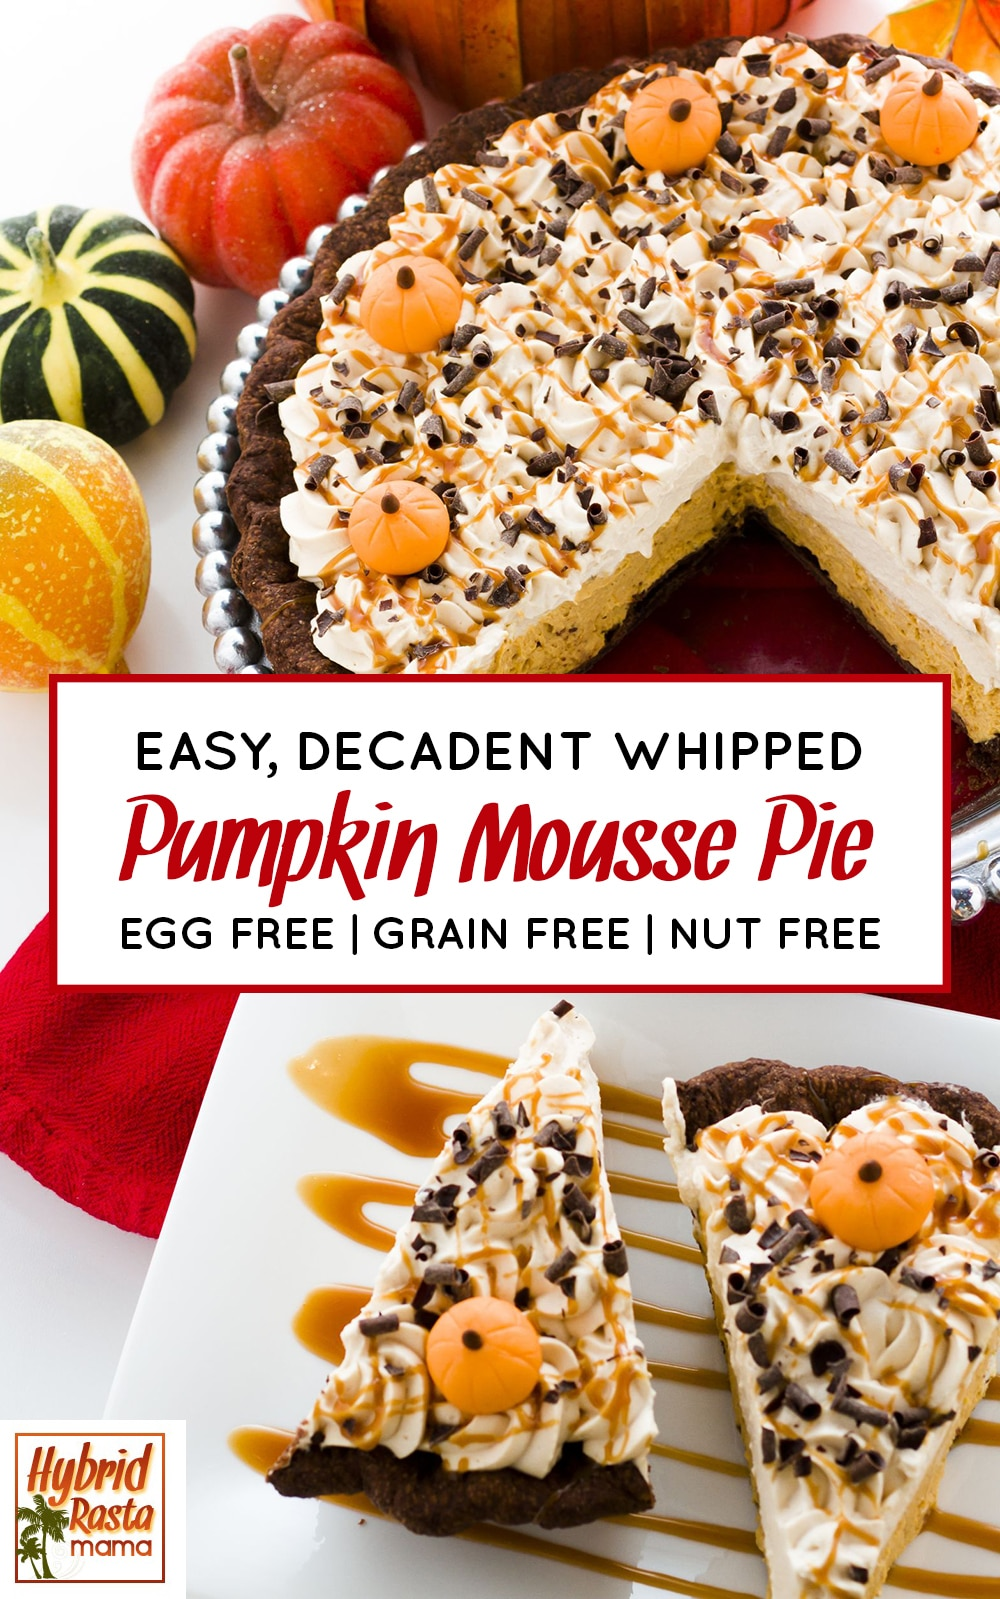 Gluten free double layer chocolate whipped pumpkin mousse pie